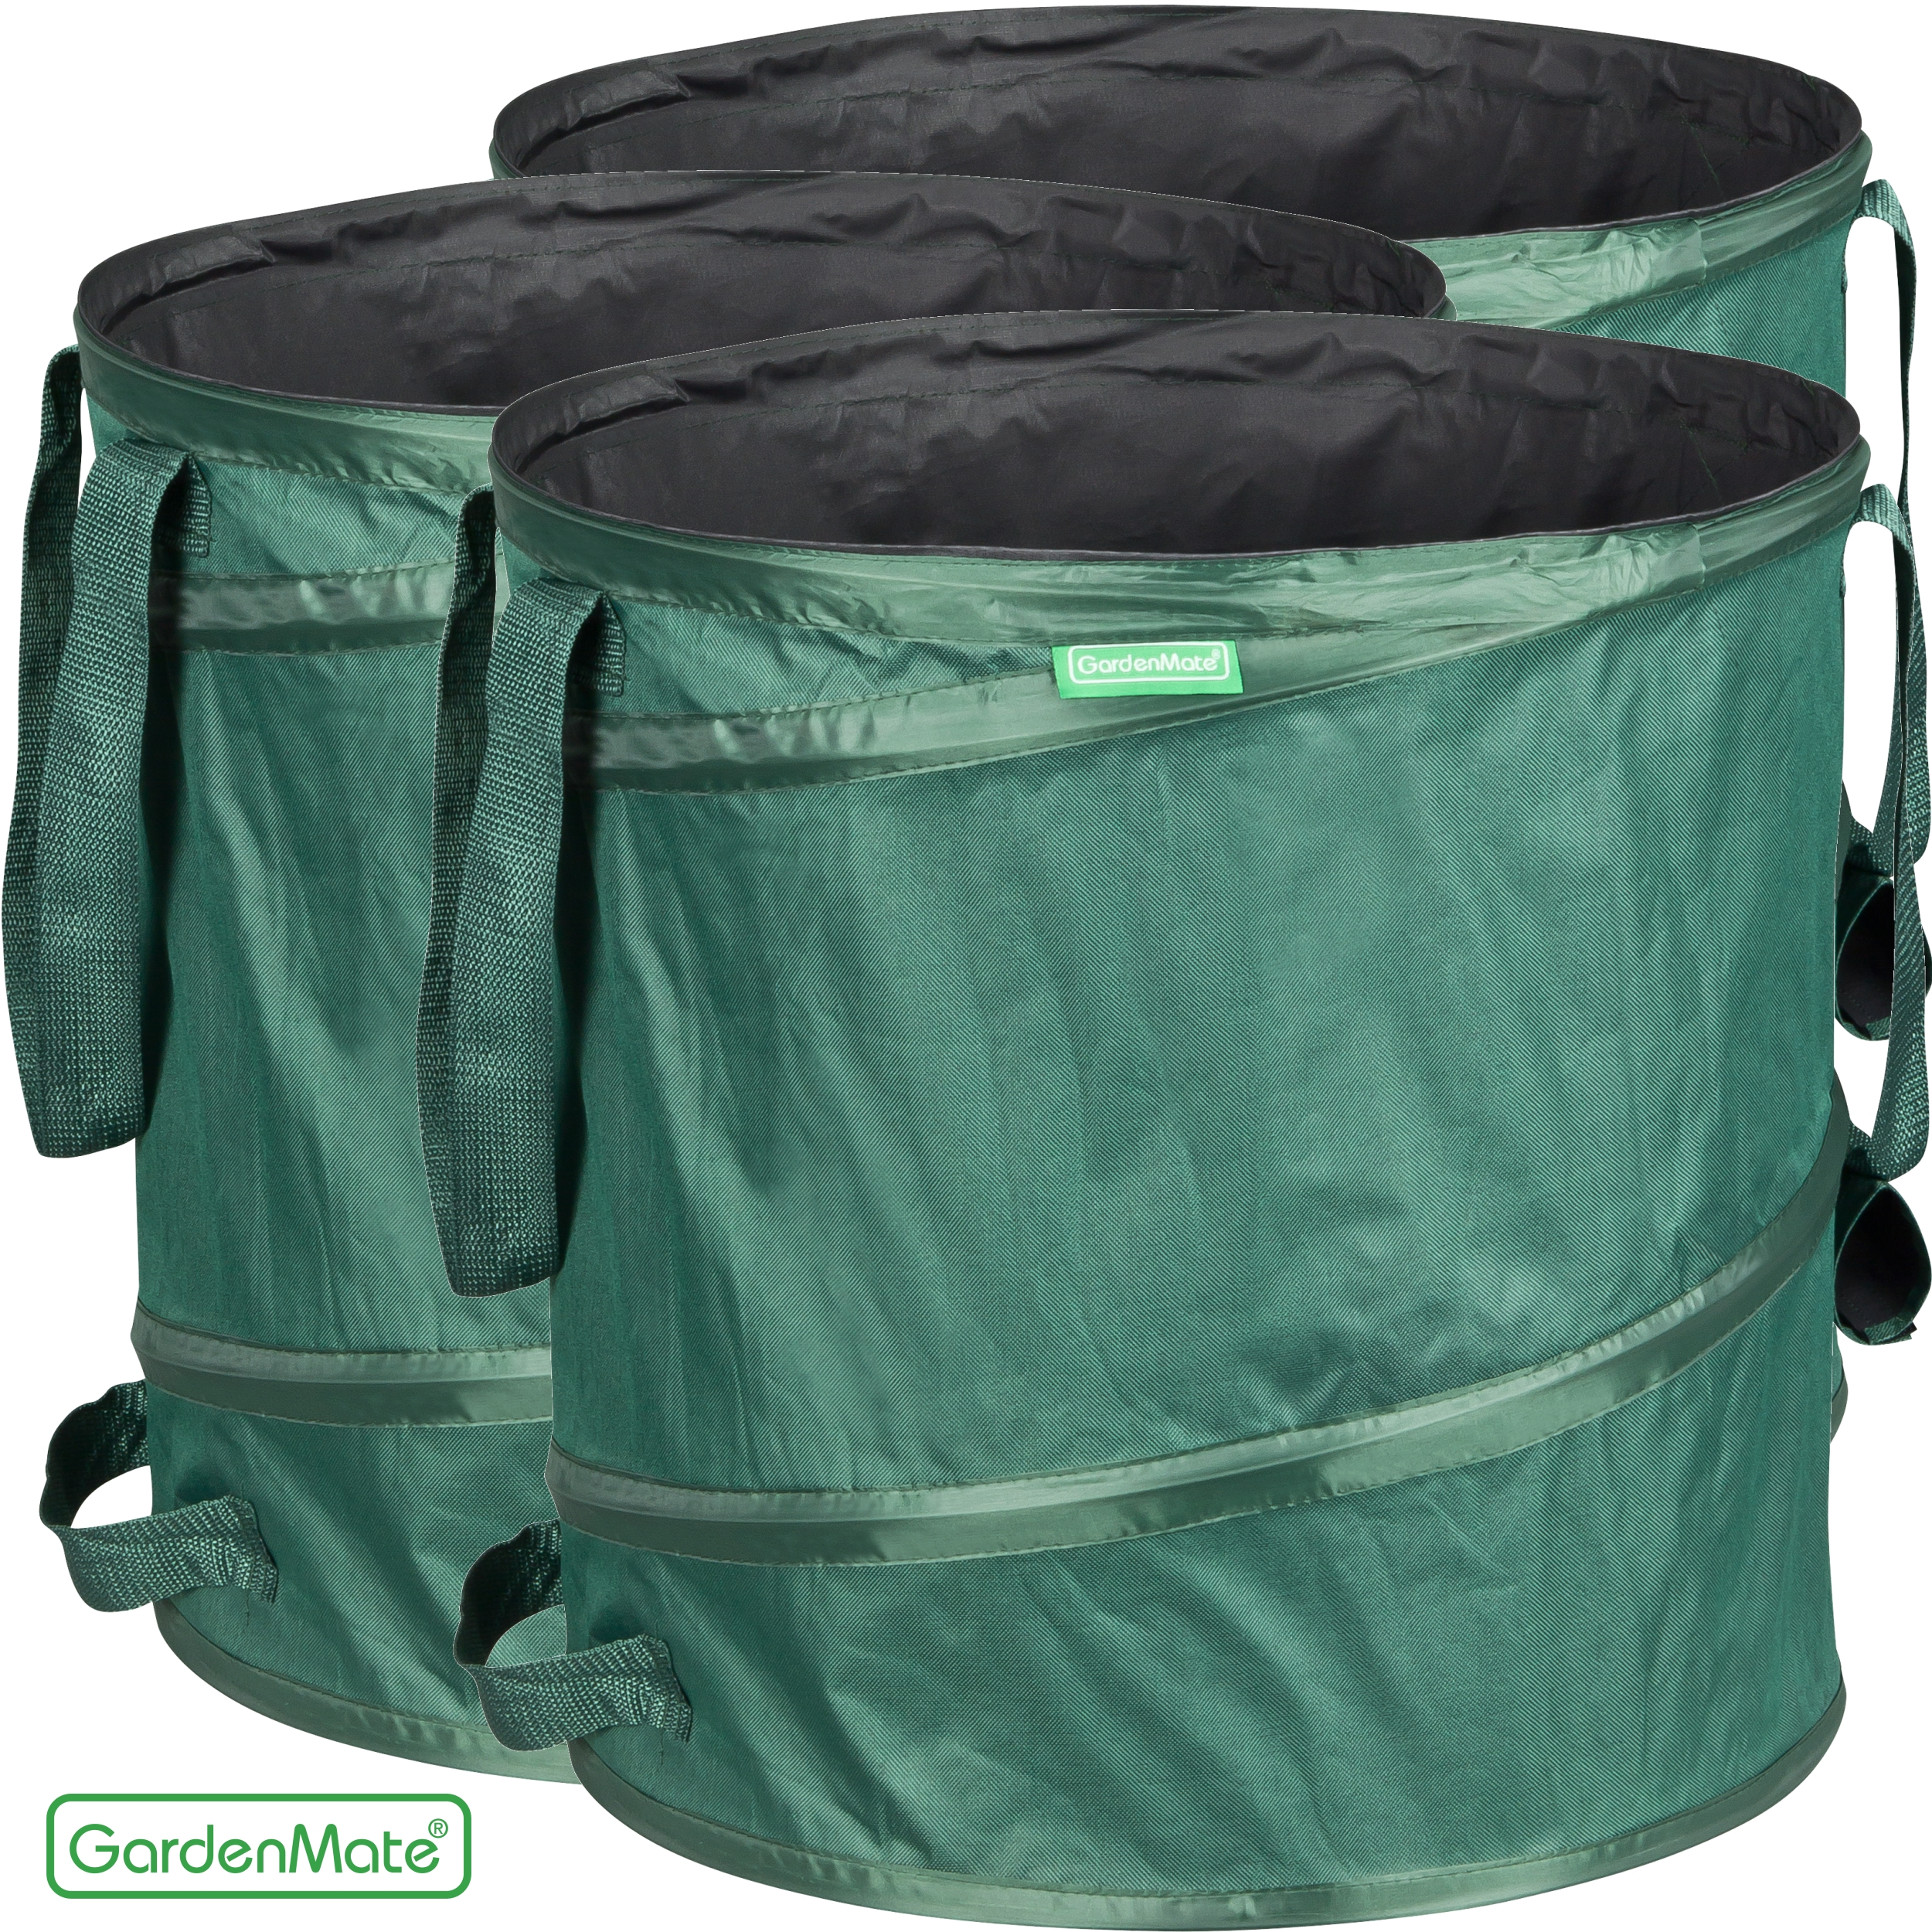 pflanzschildde GardenMate Set of 3 Pop Up Garden Bags 85